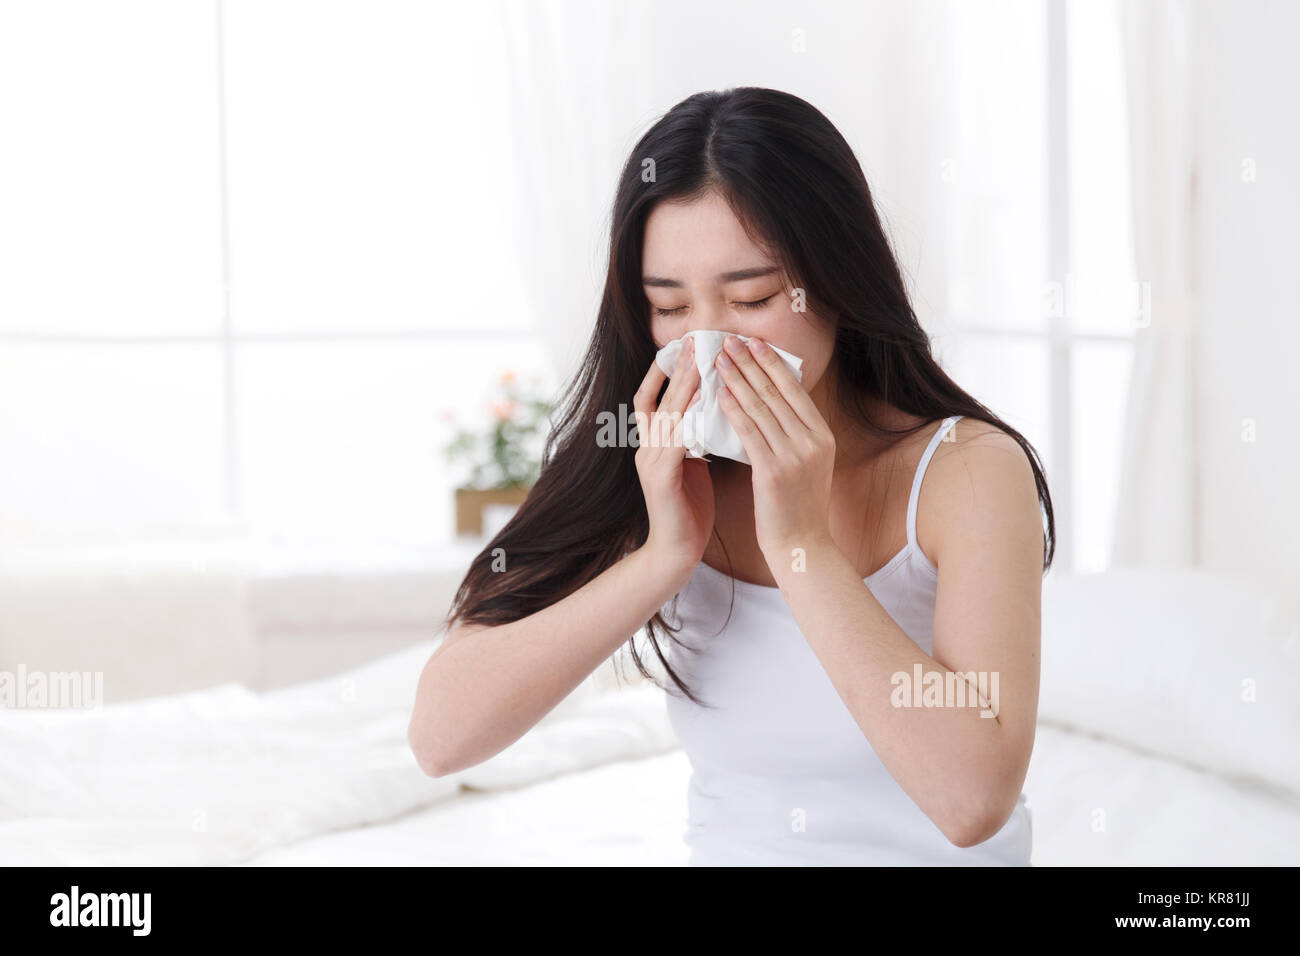 Young women are catching cold - Stock Image